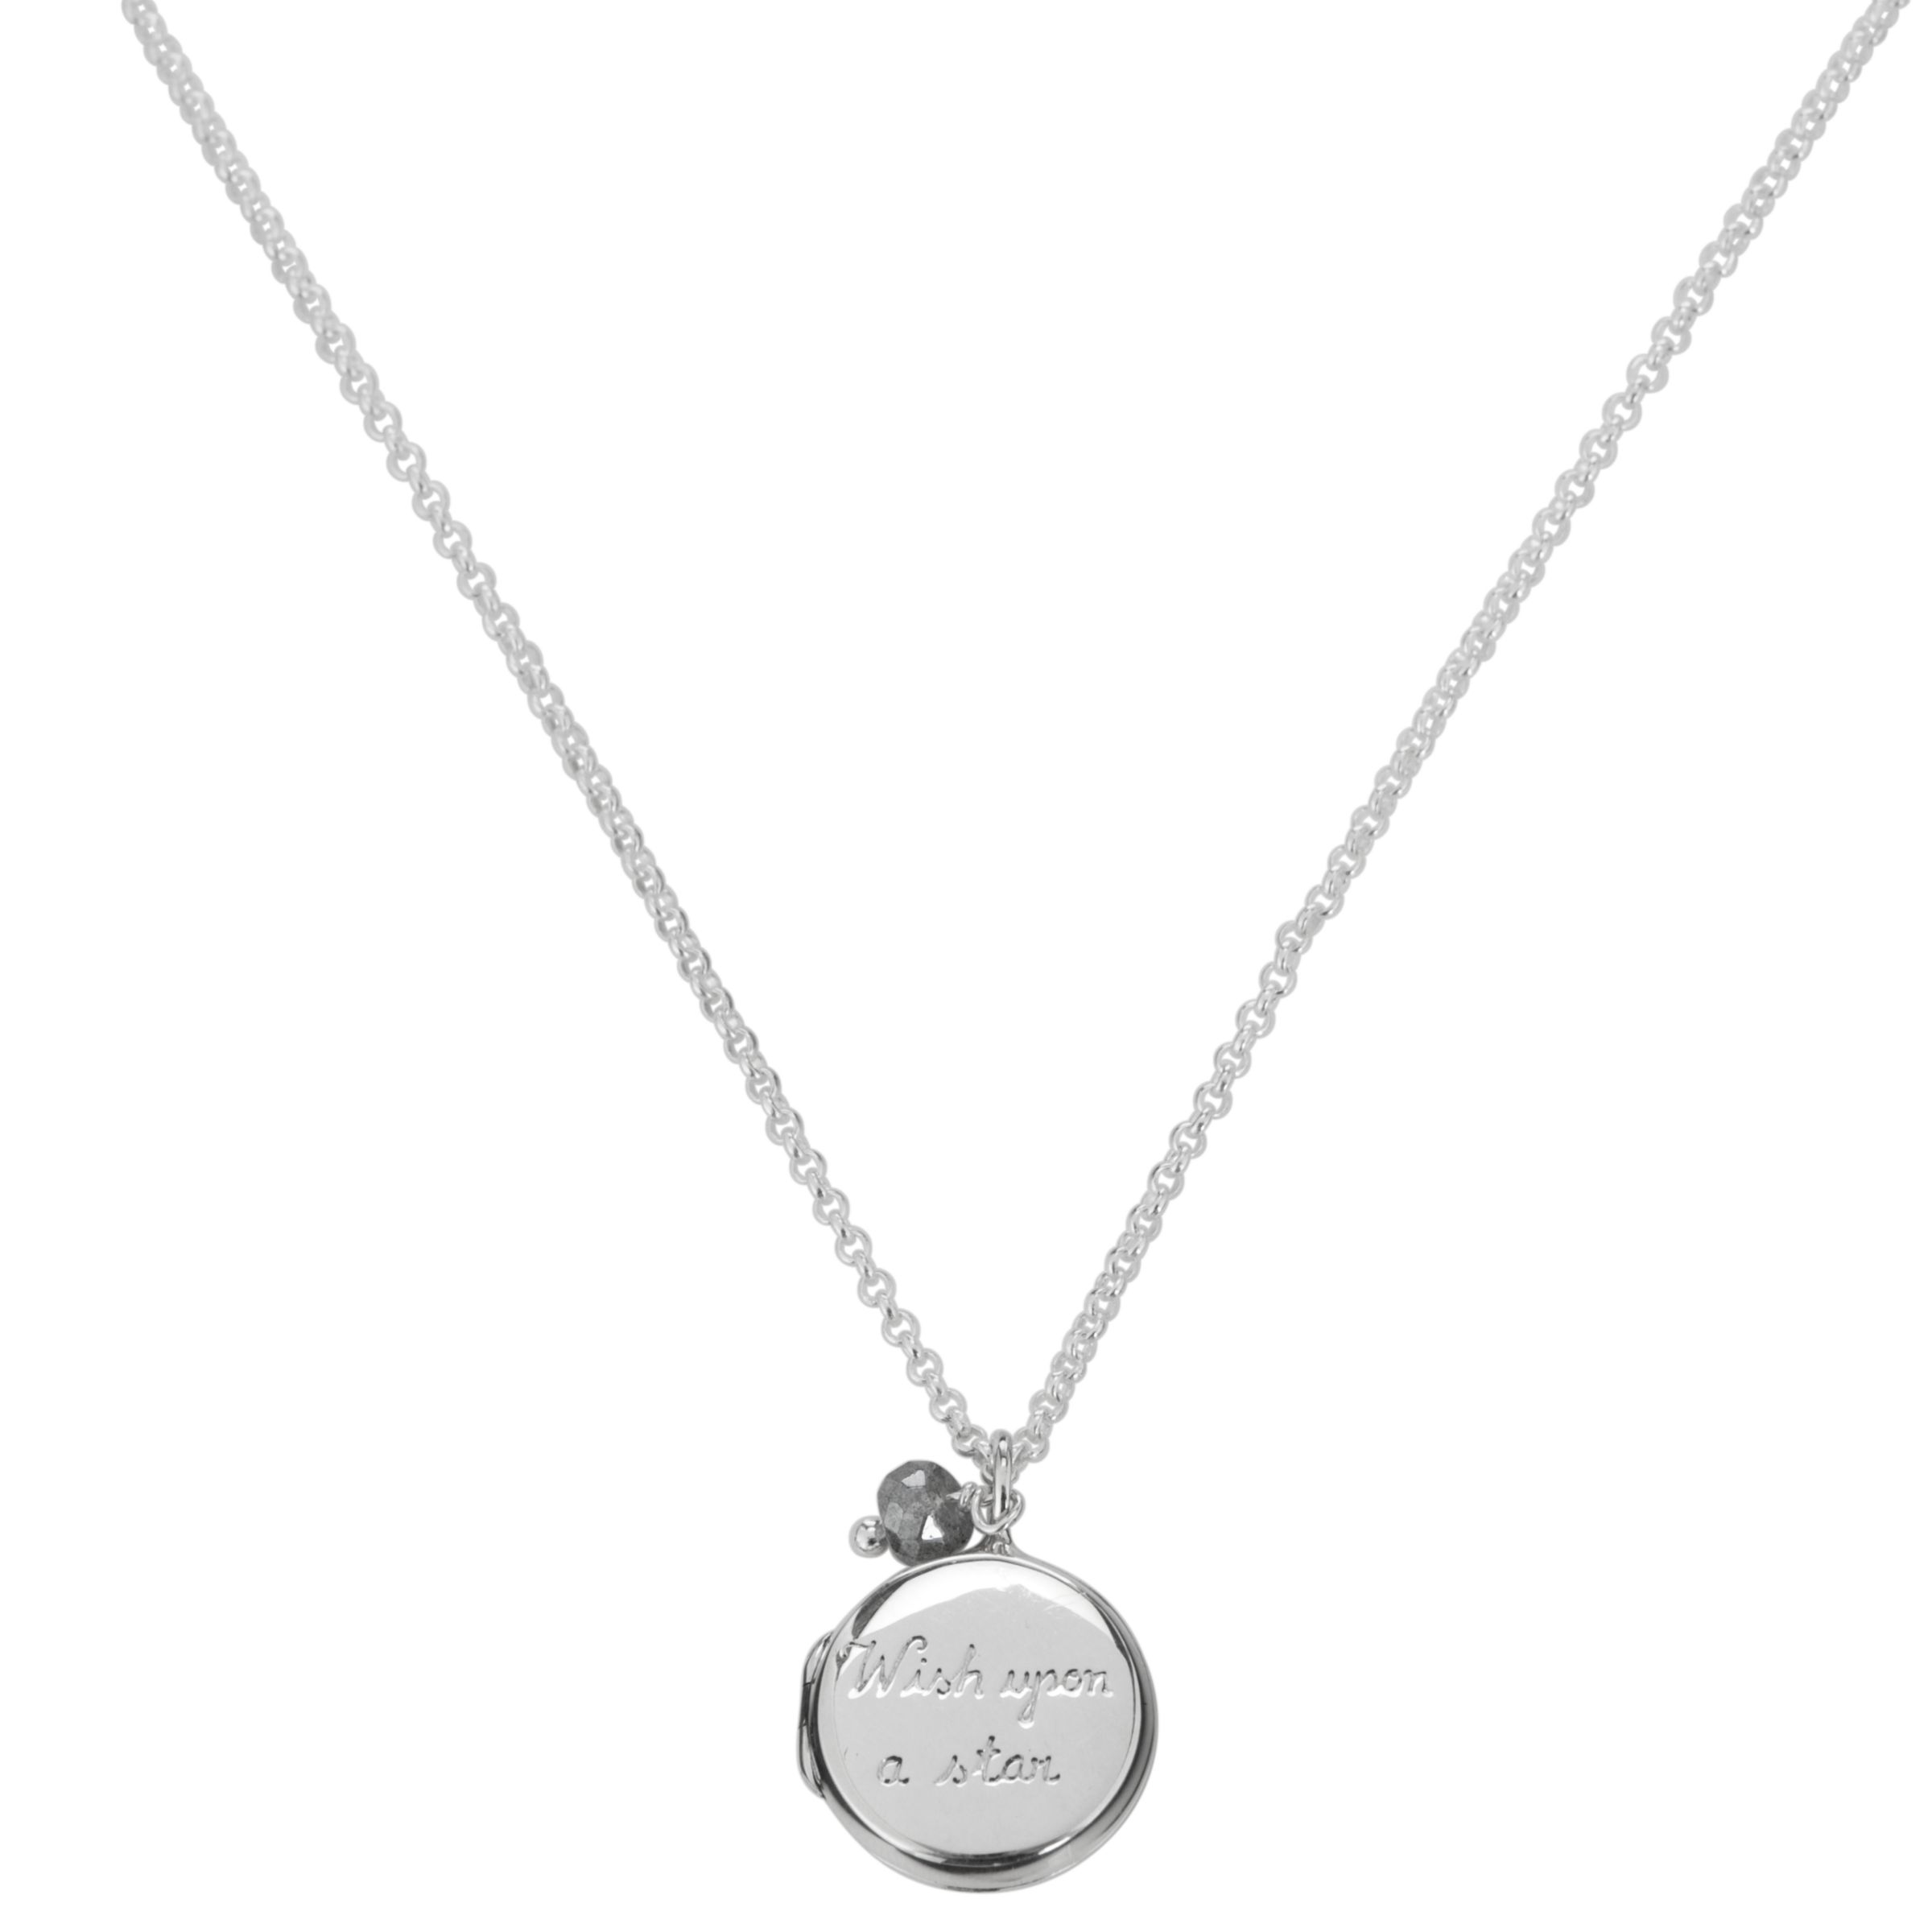 Martick Wish Upon A Star Secret Locket Necklace, Silver